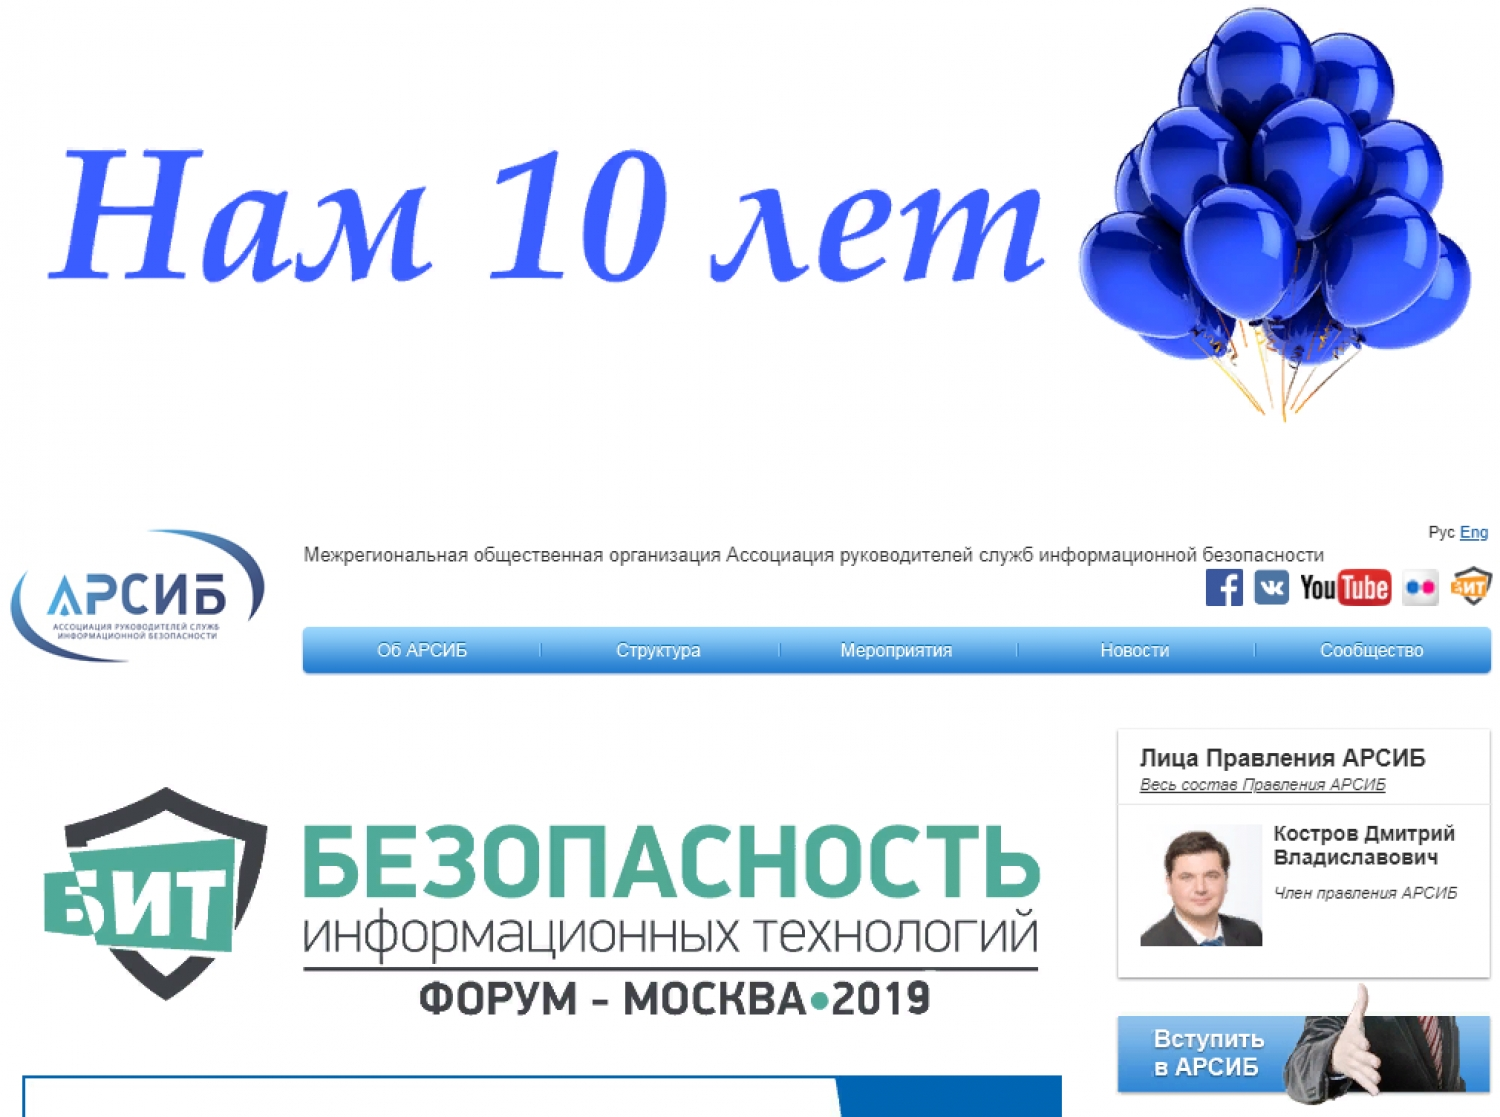 SEVENTH ACISO CONFERENCE IN MOSCOW (INFORMATION TECHNOLOGY SECURITY)